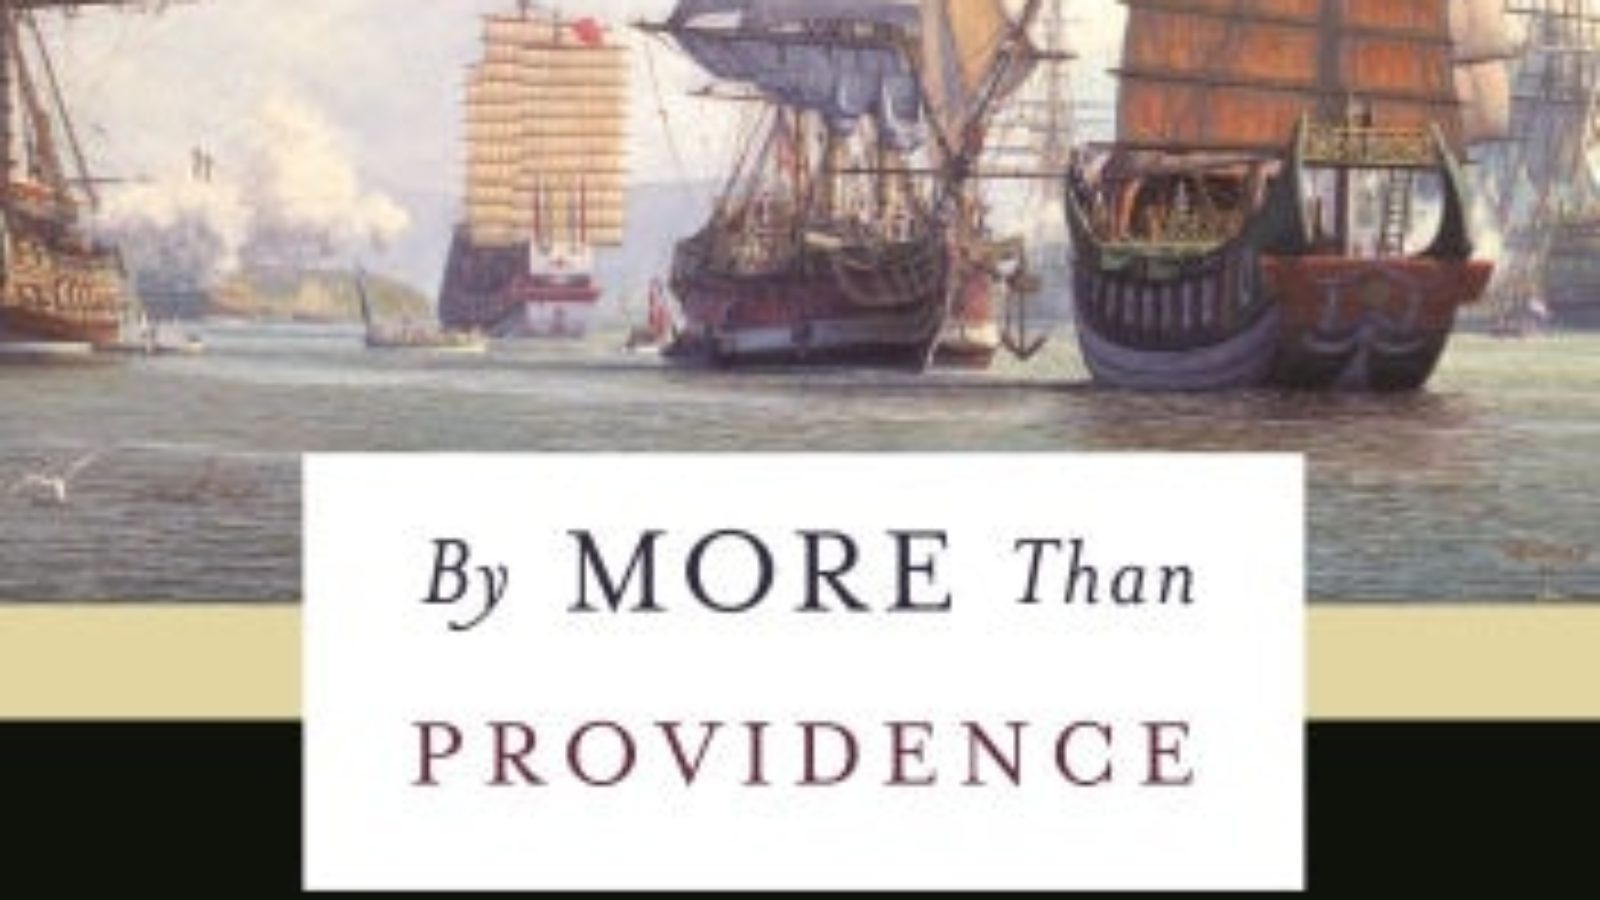 Michael Green By more than providence book cover